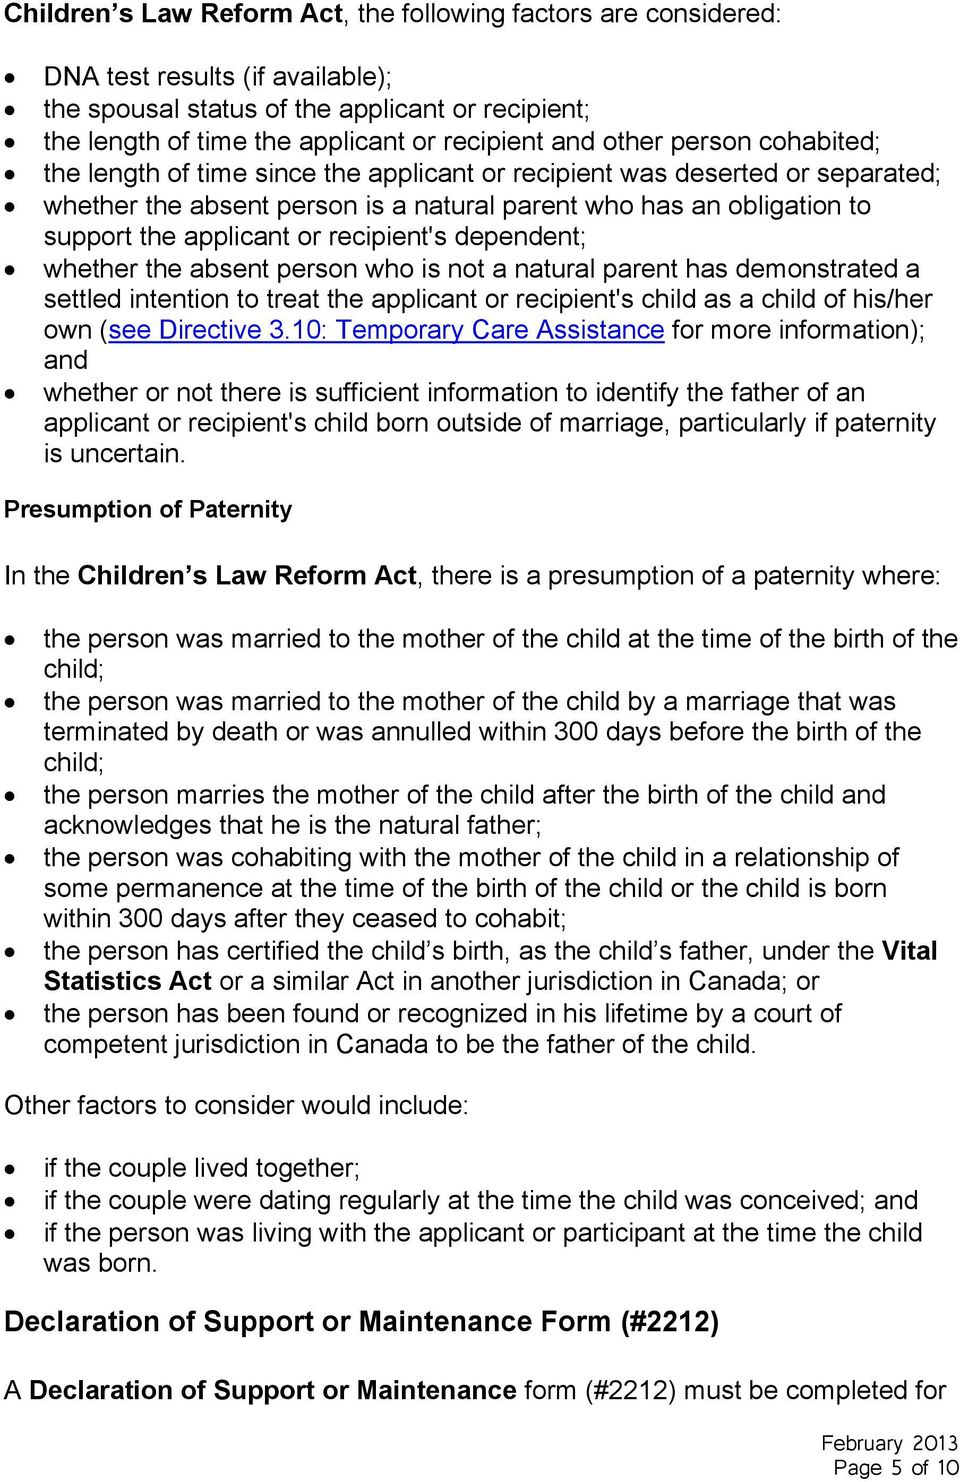 recipient's dependent; whether the absent person who is not a natural parent has demonstrated a settled intention to treat the applicant or recipient's child as a child of his/her own (see Directive